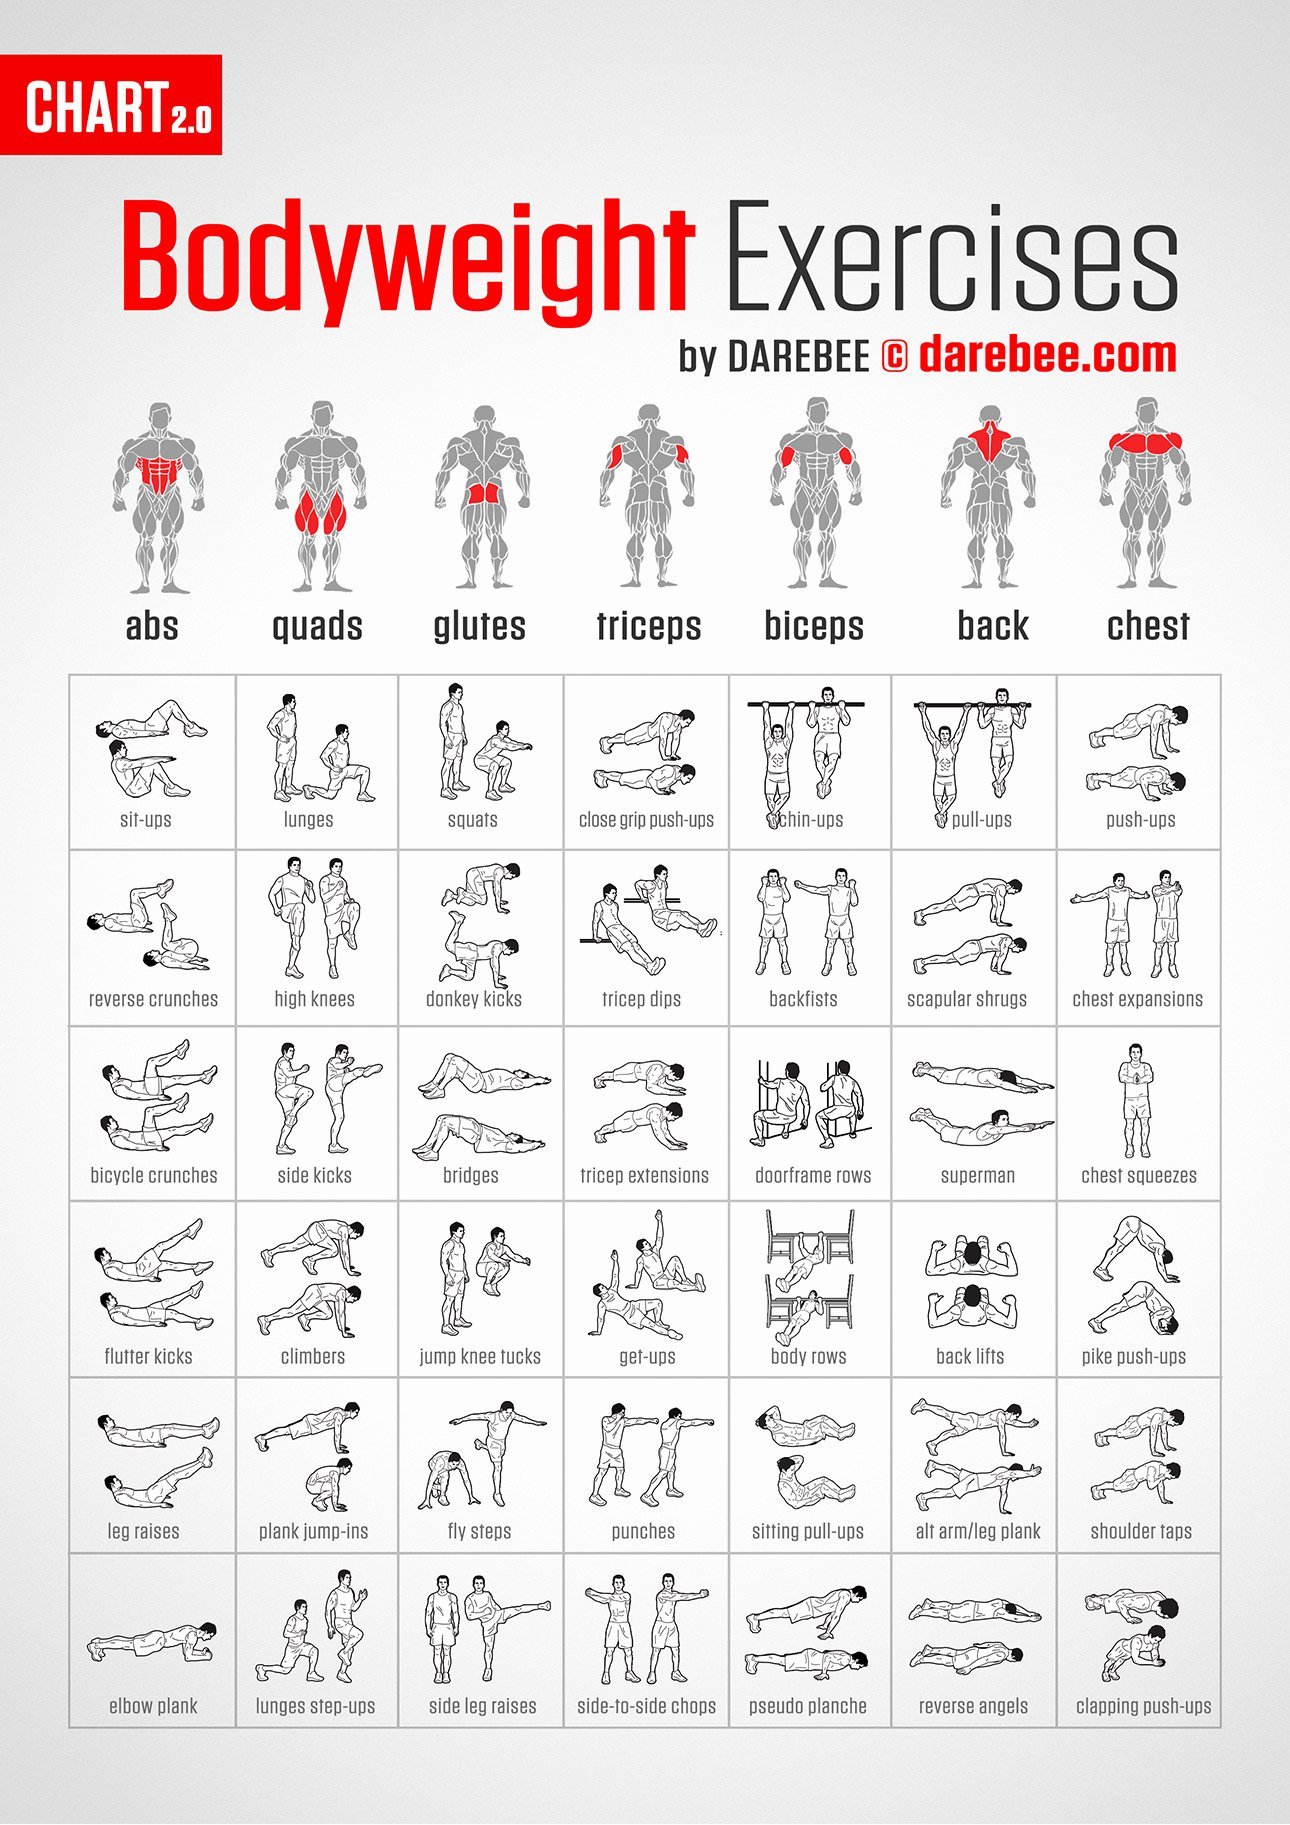 Work Out Chart Awesome Work Every Muscle with This Bodyweight Exercise Chart